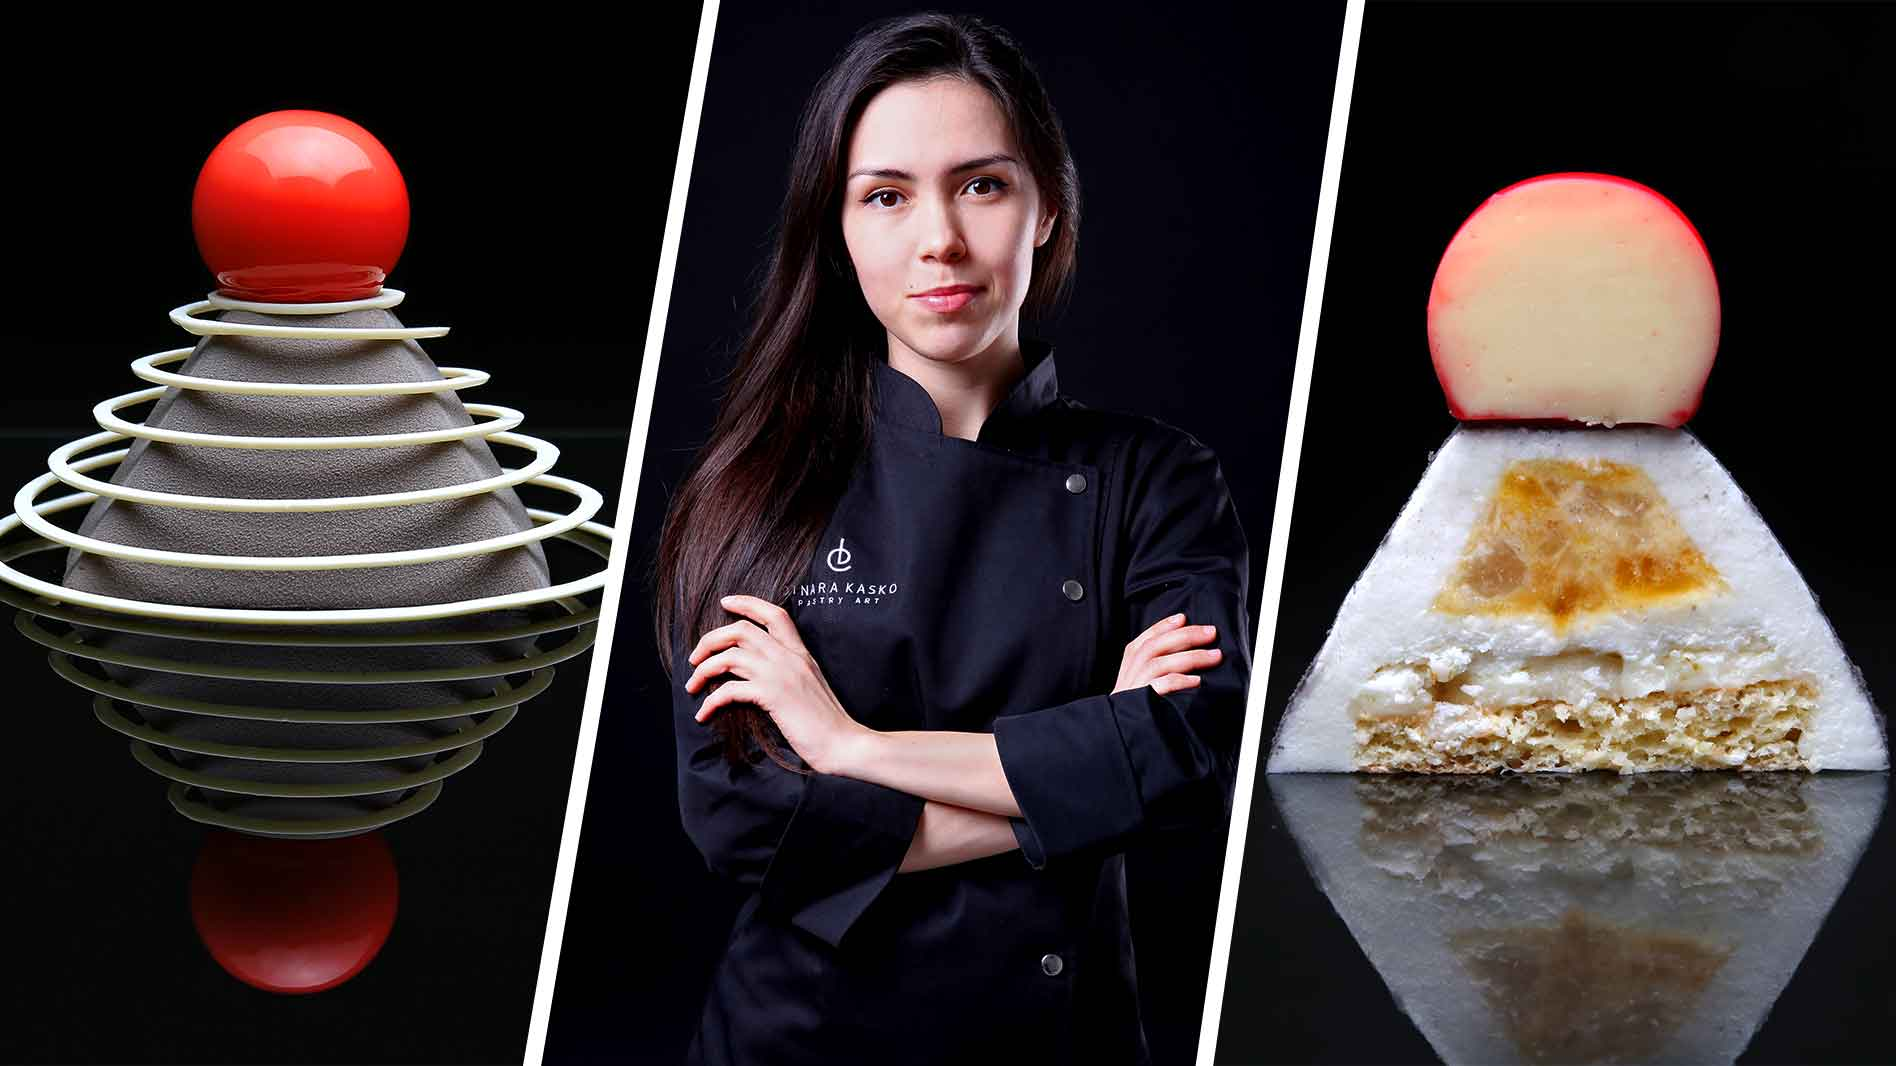 International chef reveals her tricks to mastering a dessert using a 3D printer